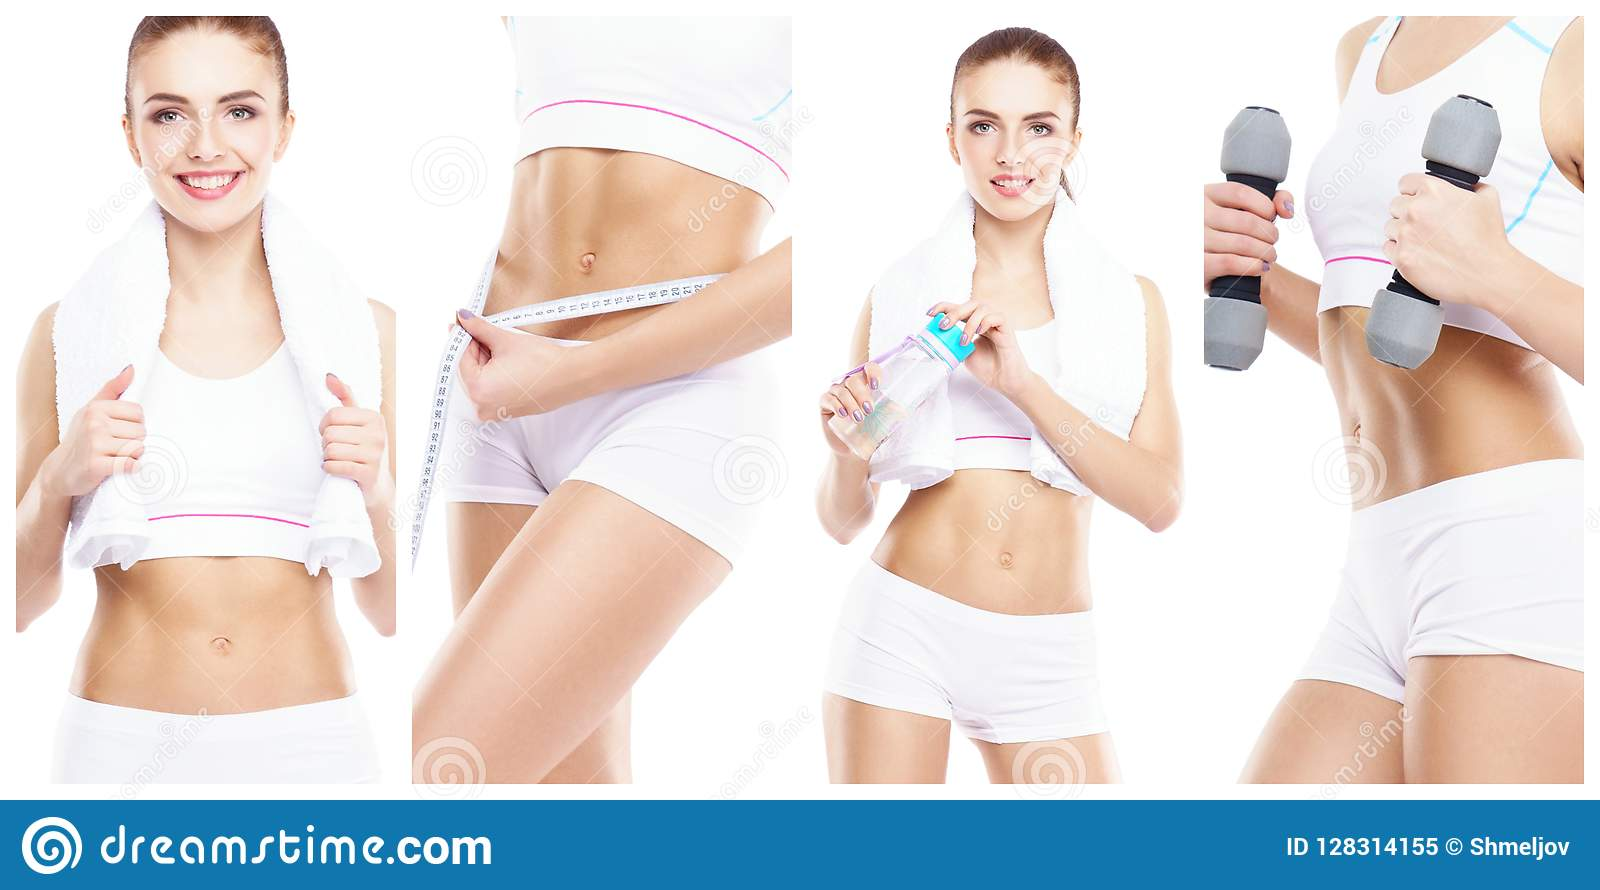 Beautiful and fit woman in a fitness workout. Isolated collage. Sport, nutrition, health and weight loss concept.